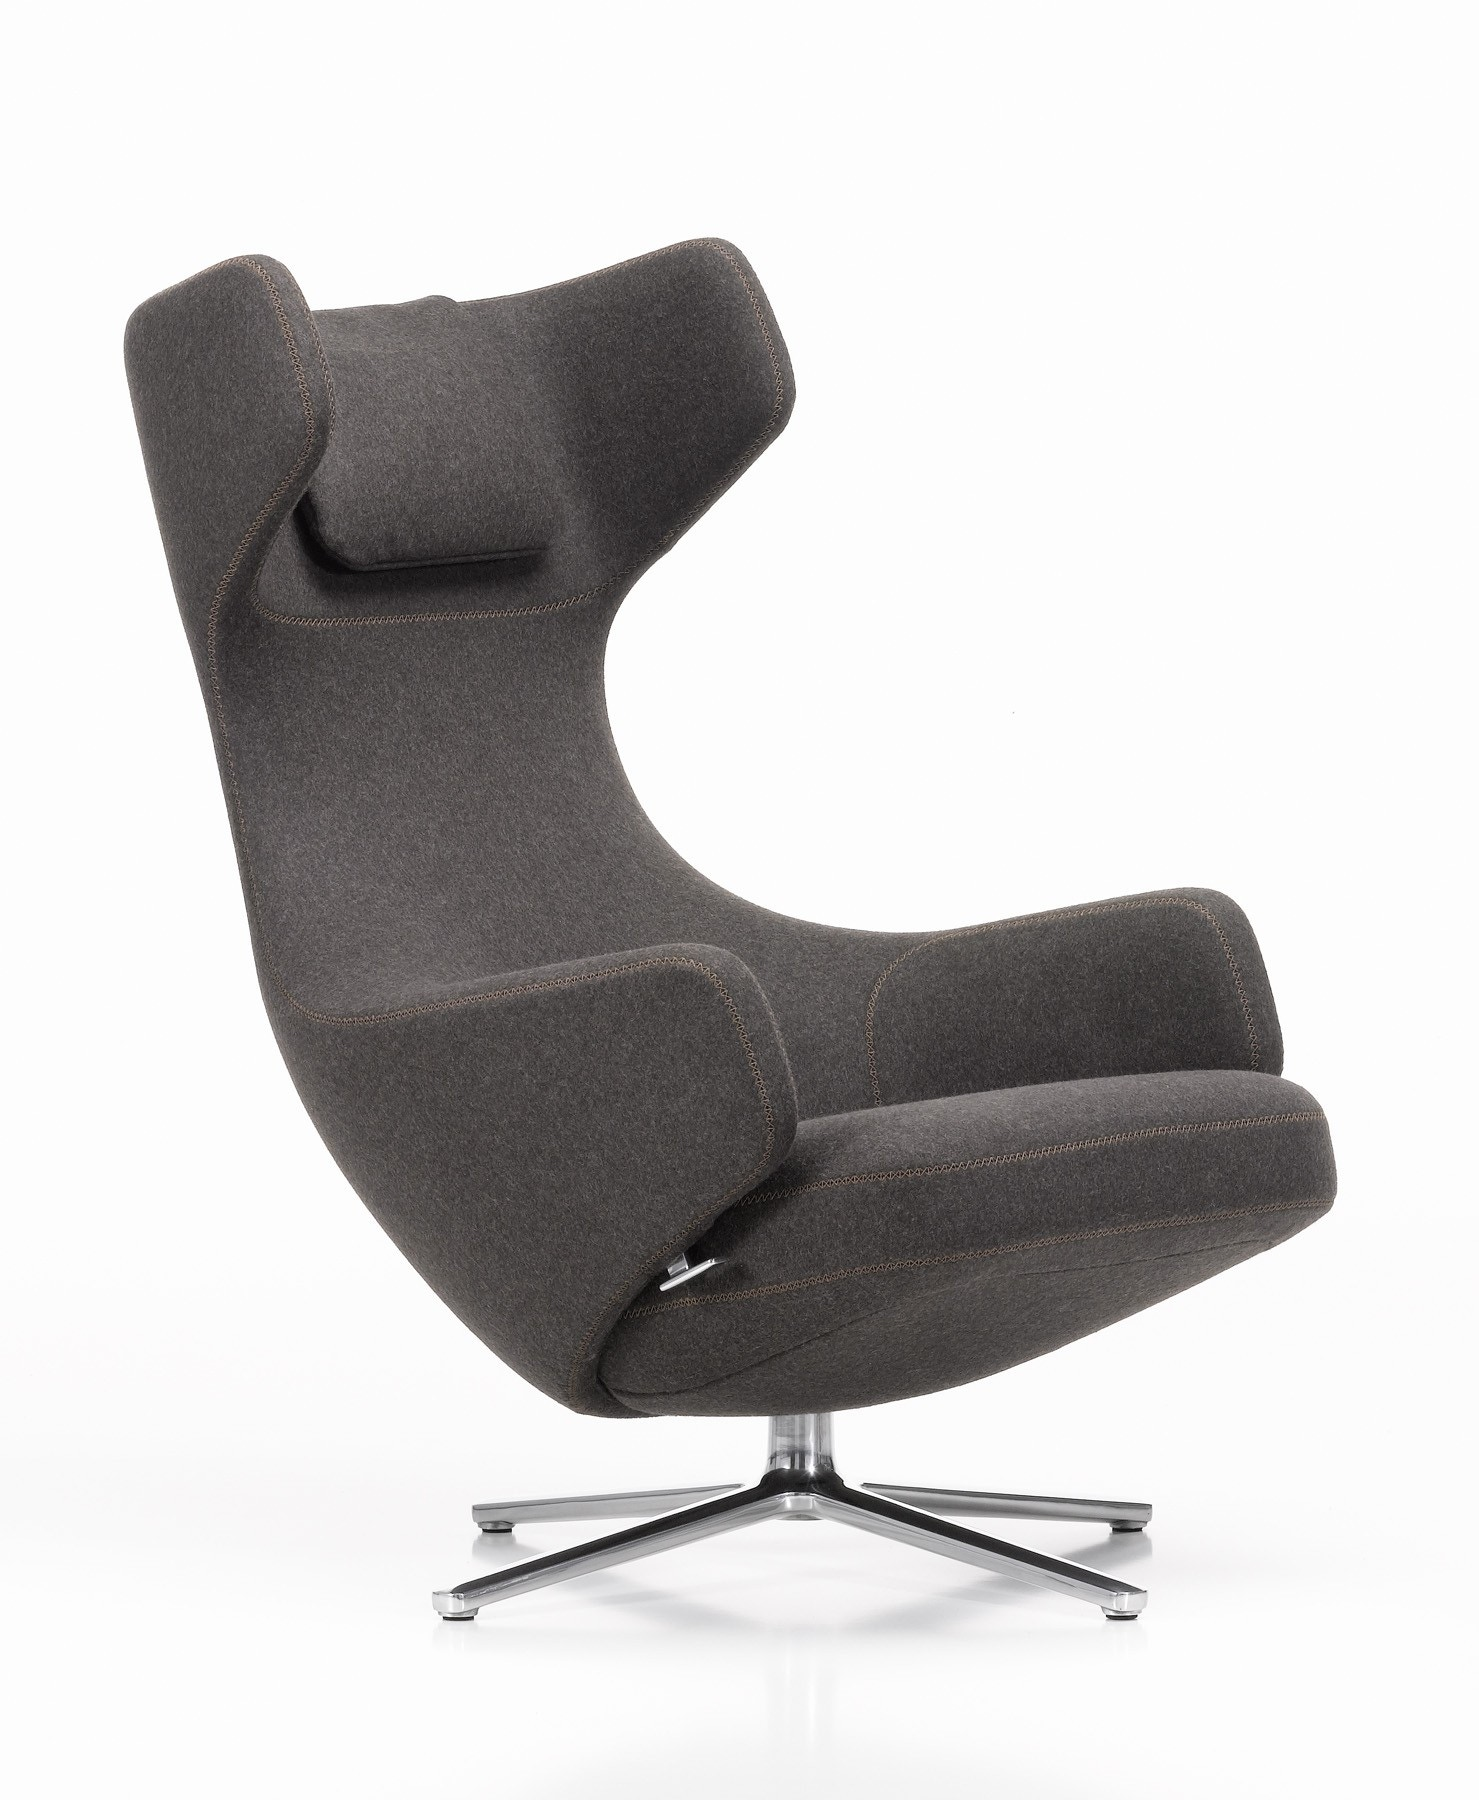 Vitra Grand Repos Lounge Chair